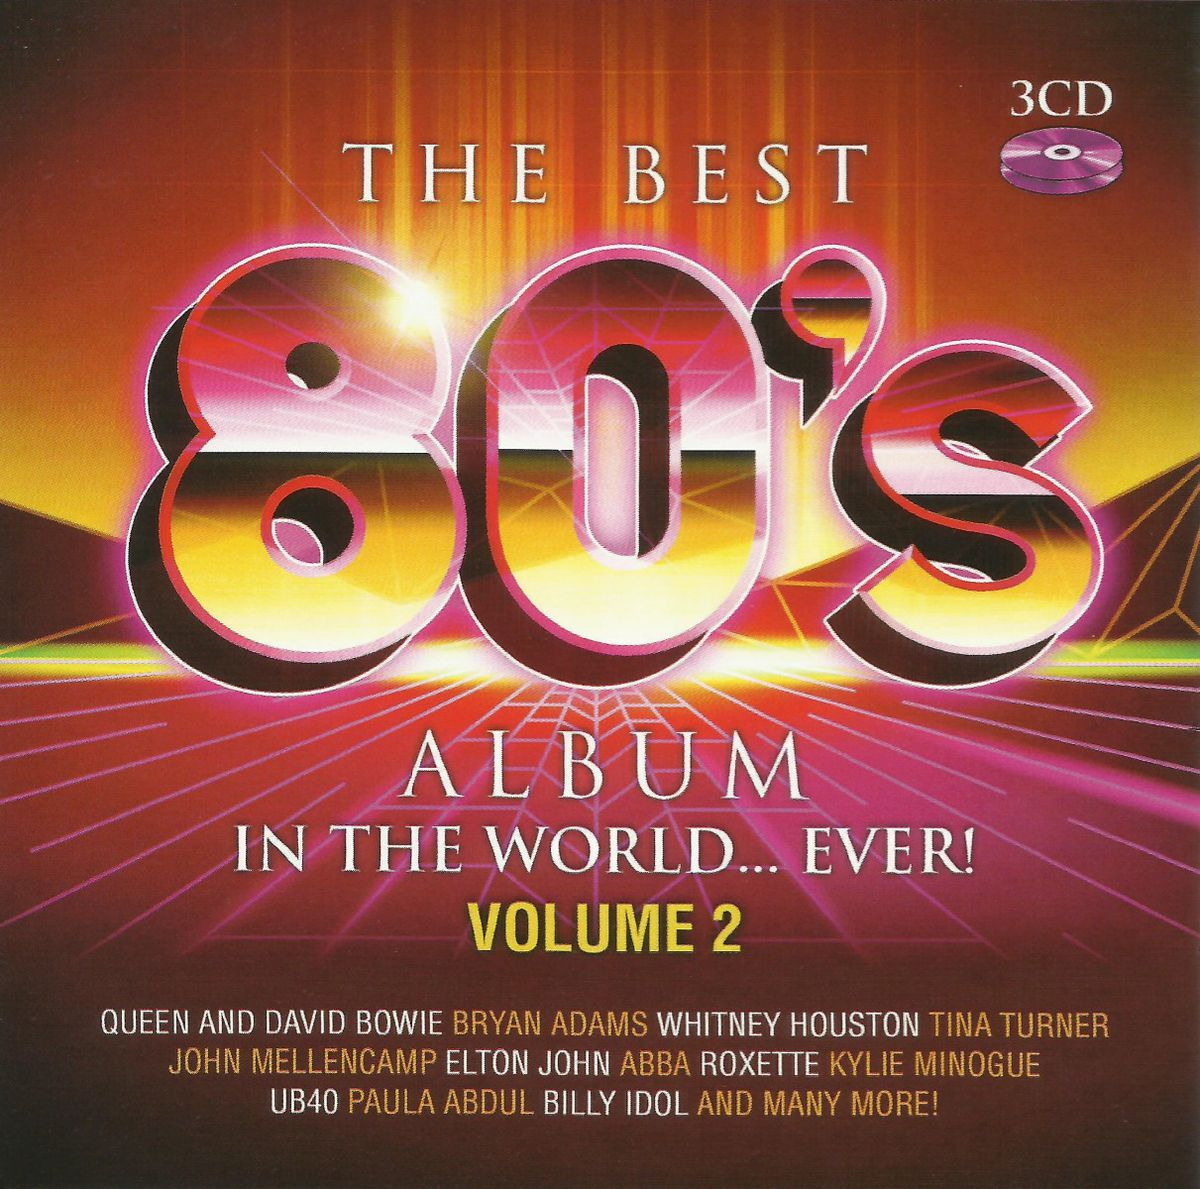 Various Artists - The Best 80's Album In The World Ever Vol.2 (cd) | Buy Online in South Africa ...